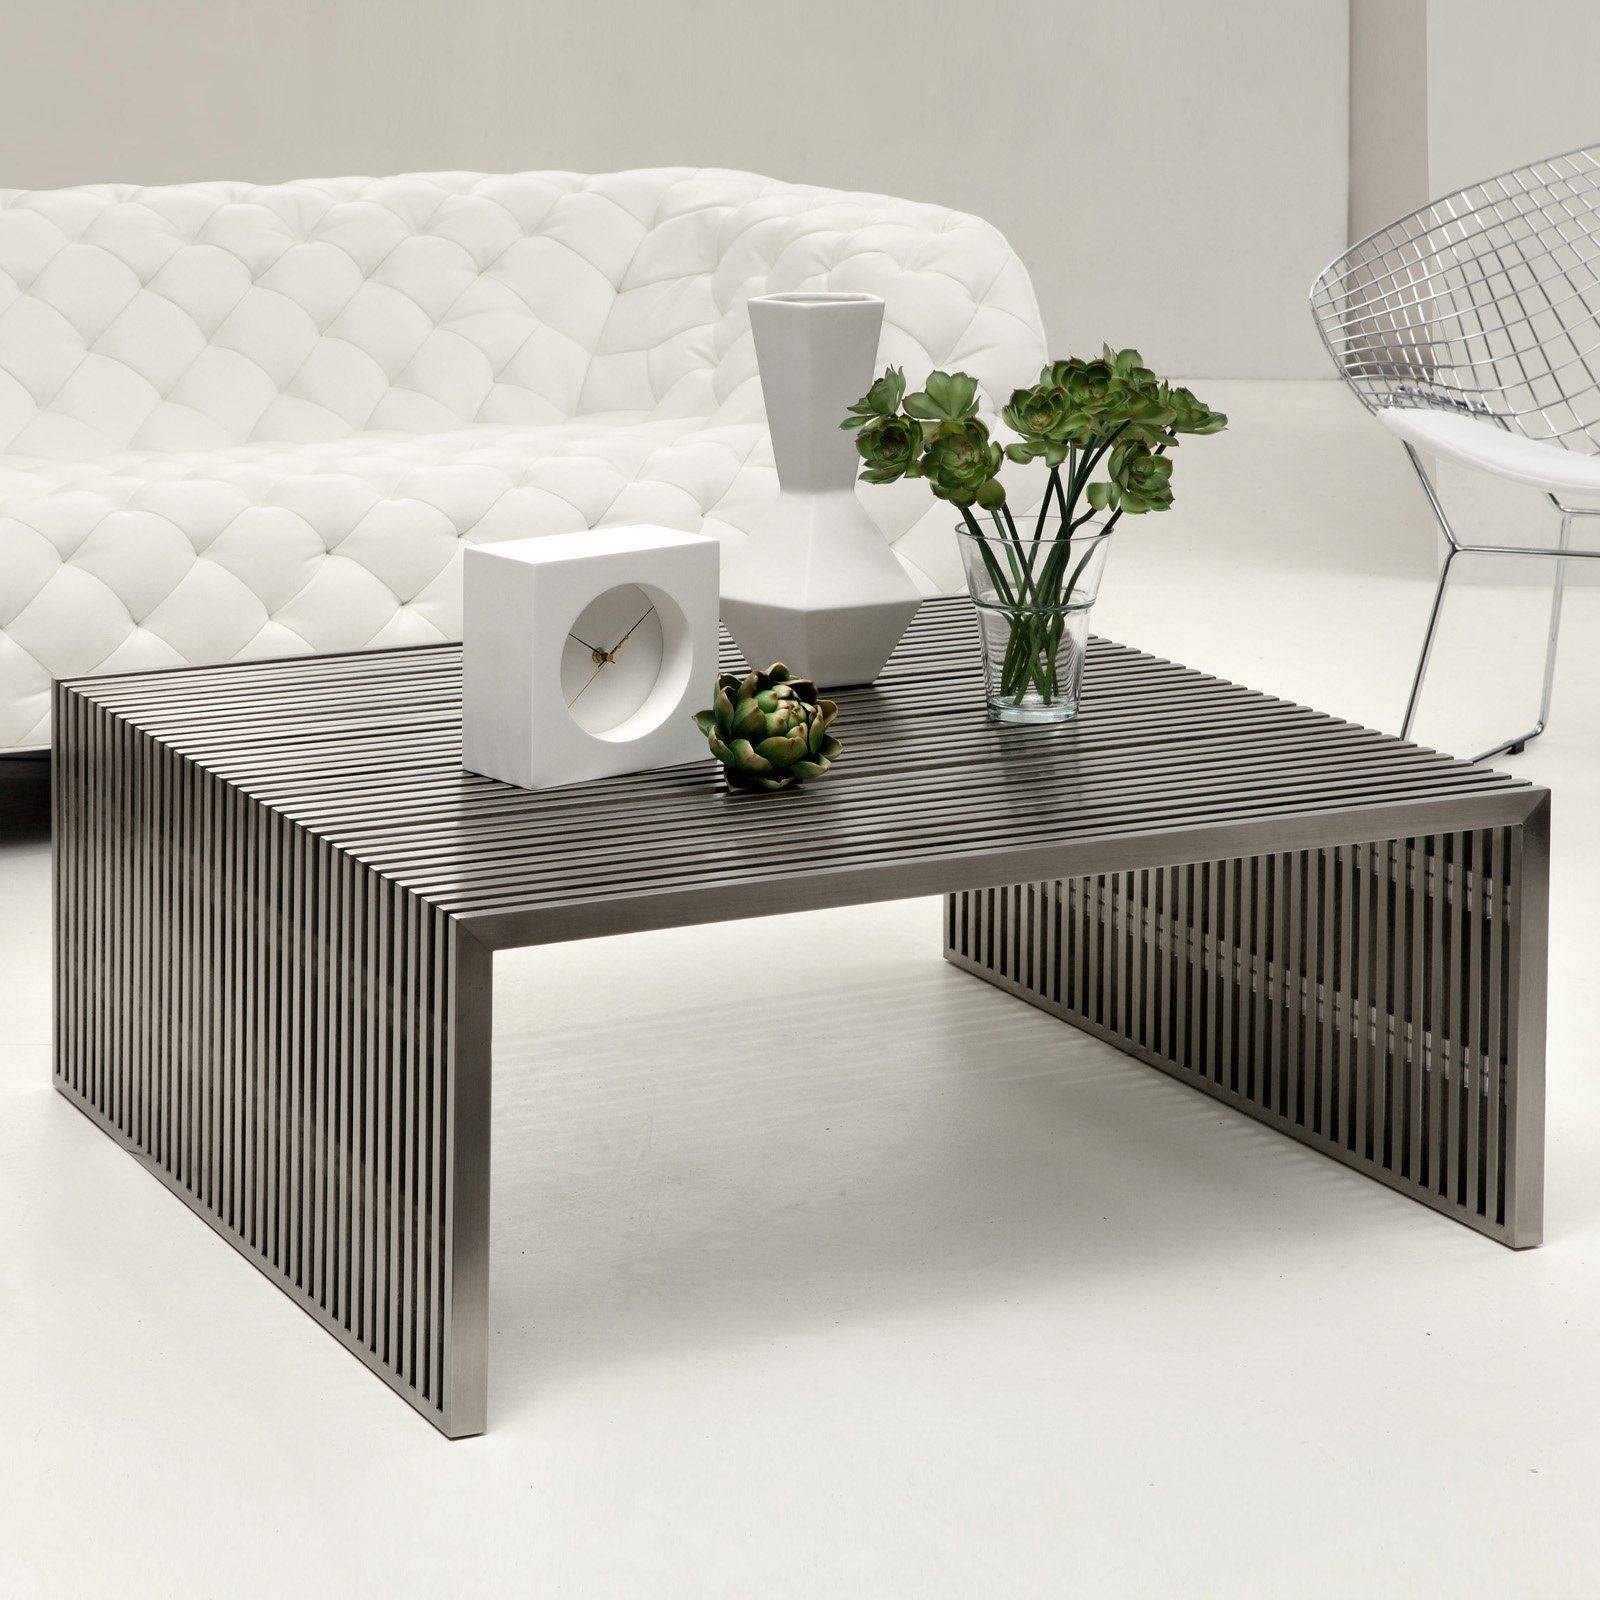 Stylish Contemporary Coffee Tables Stainless Steel Construction with Stylish Coffee Tables (Image 27 of 30)